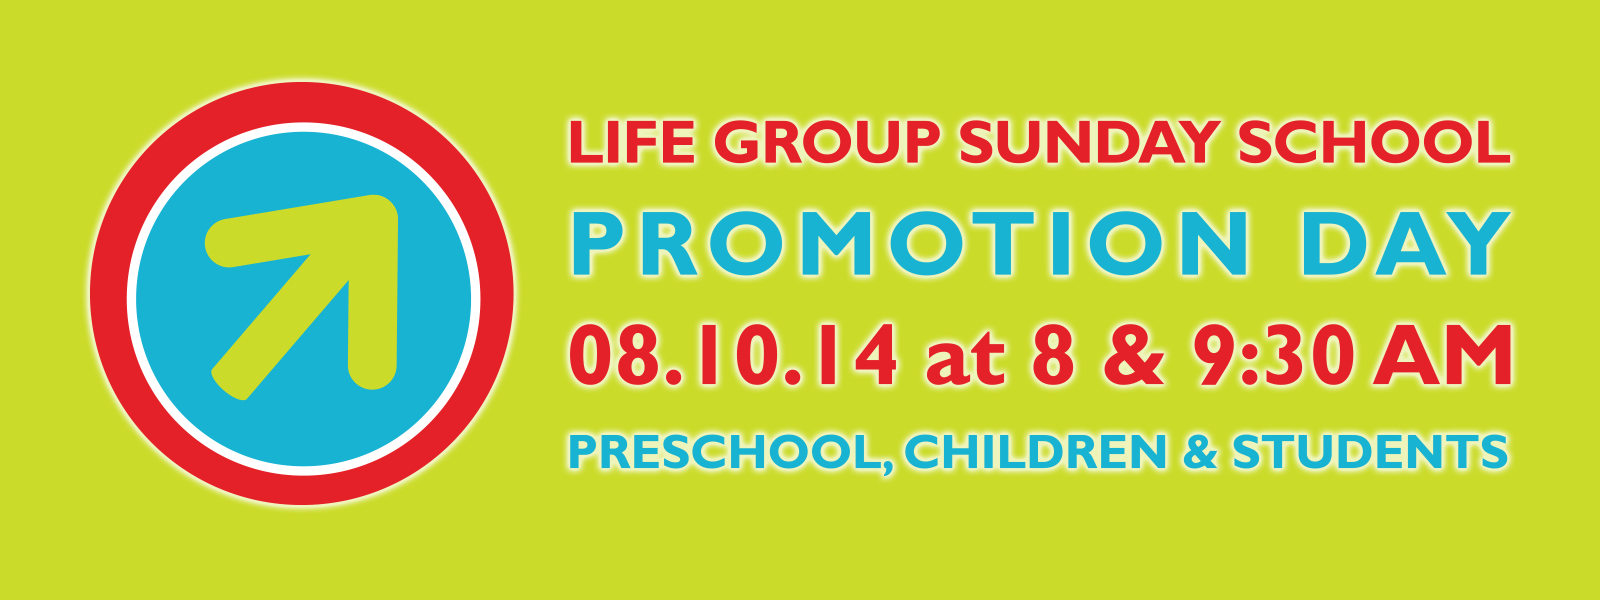 Life Group Sunday School Promotion Day